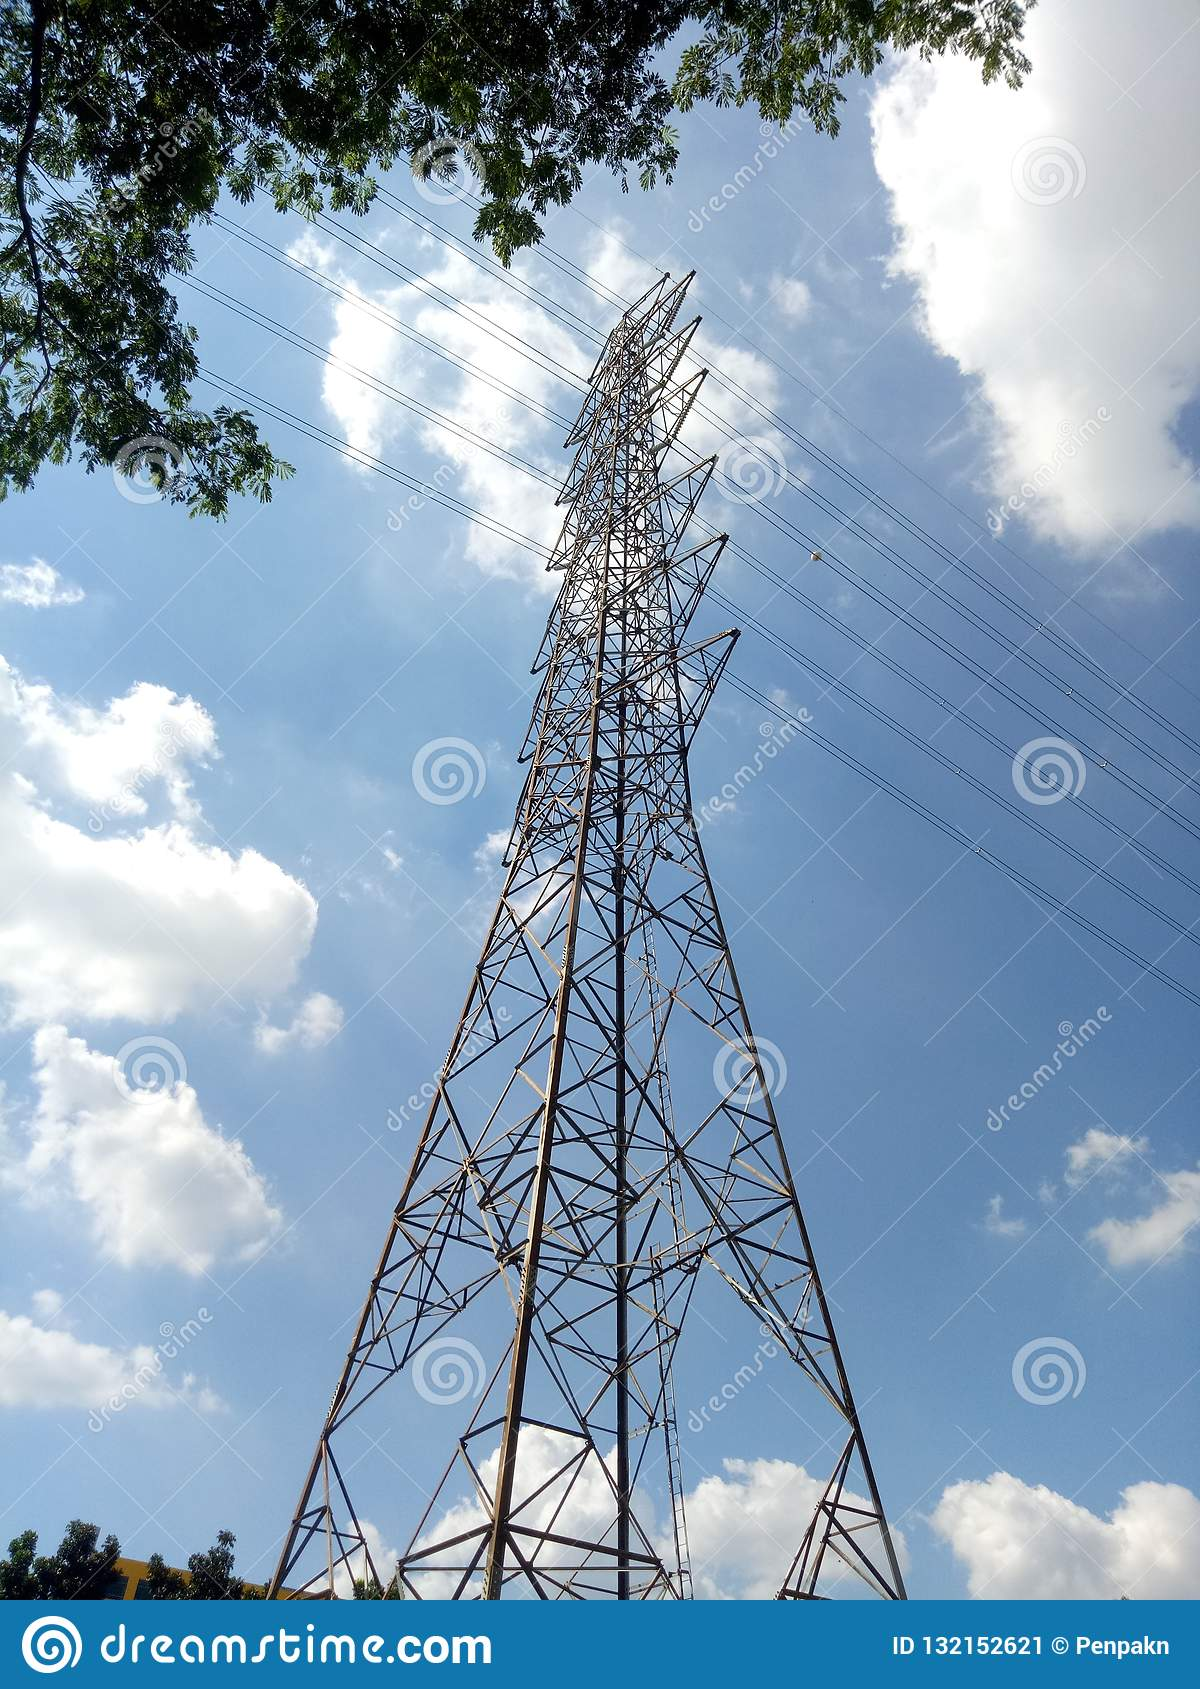 High Voltage Pole Post A Tall Metal Structure That Is Used